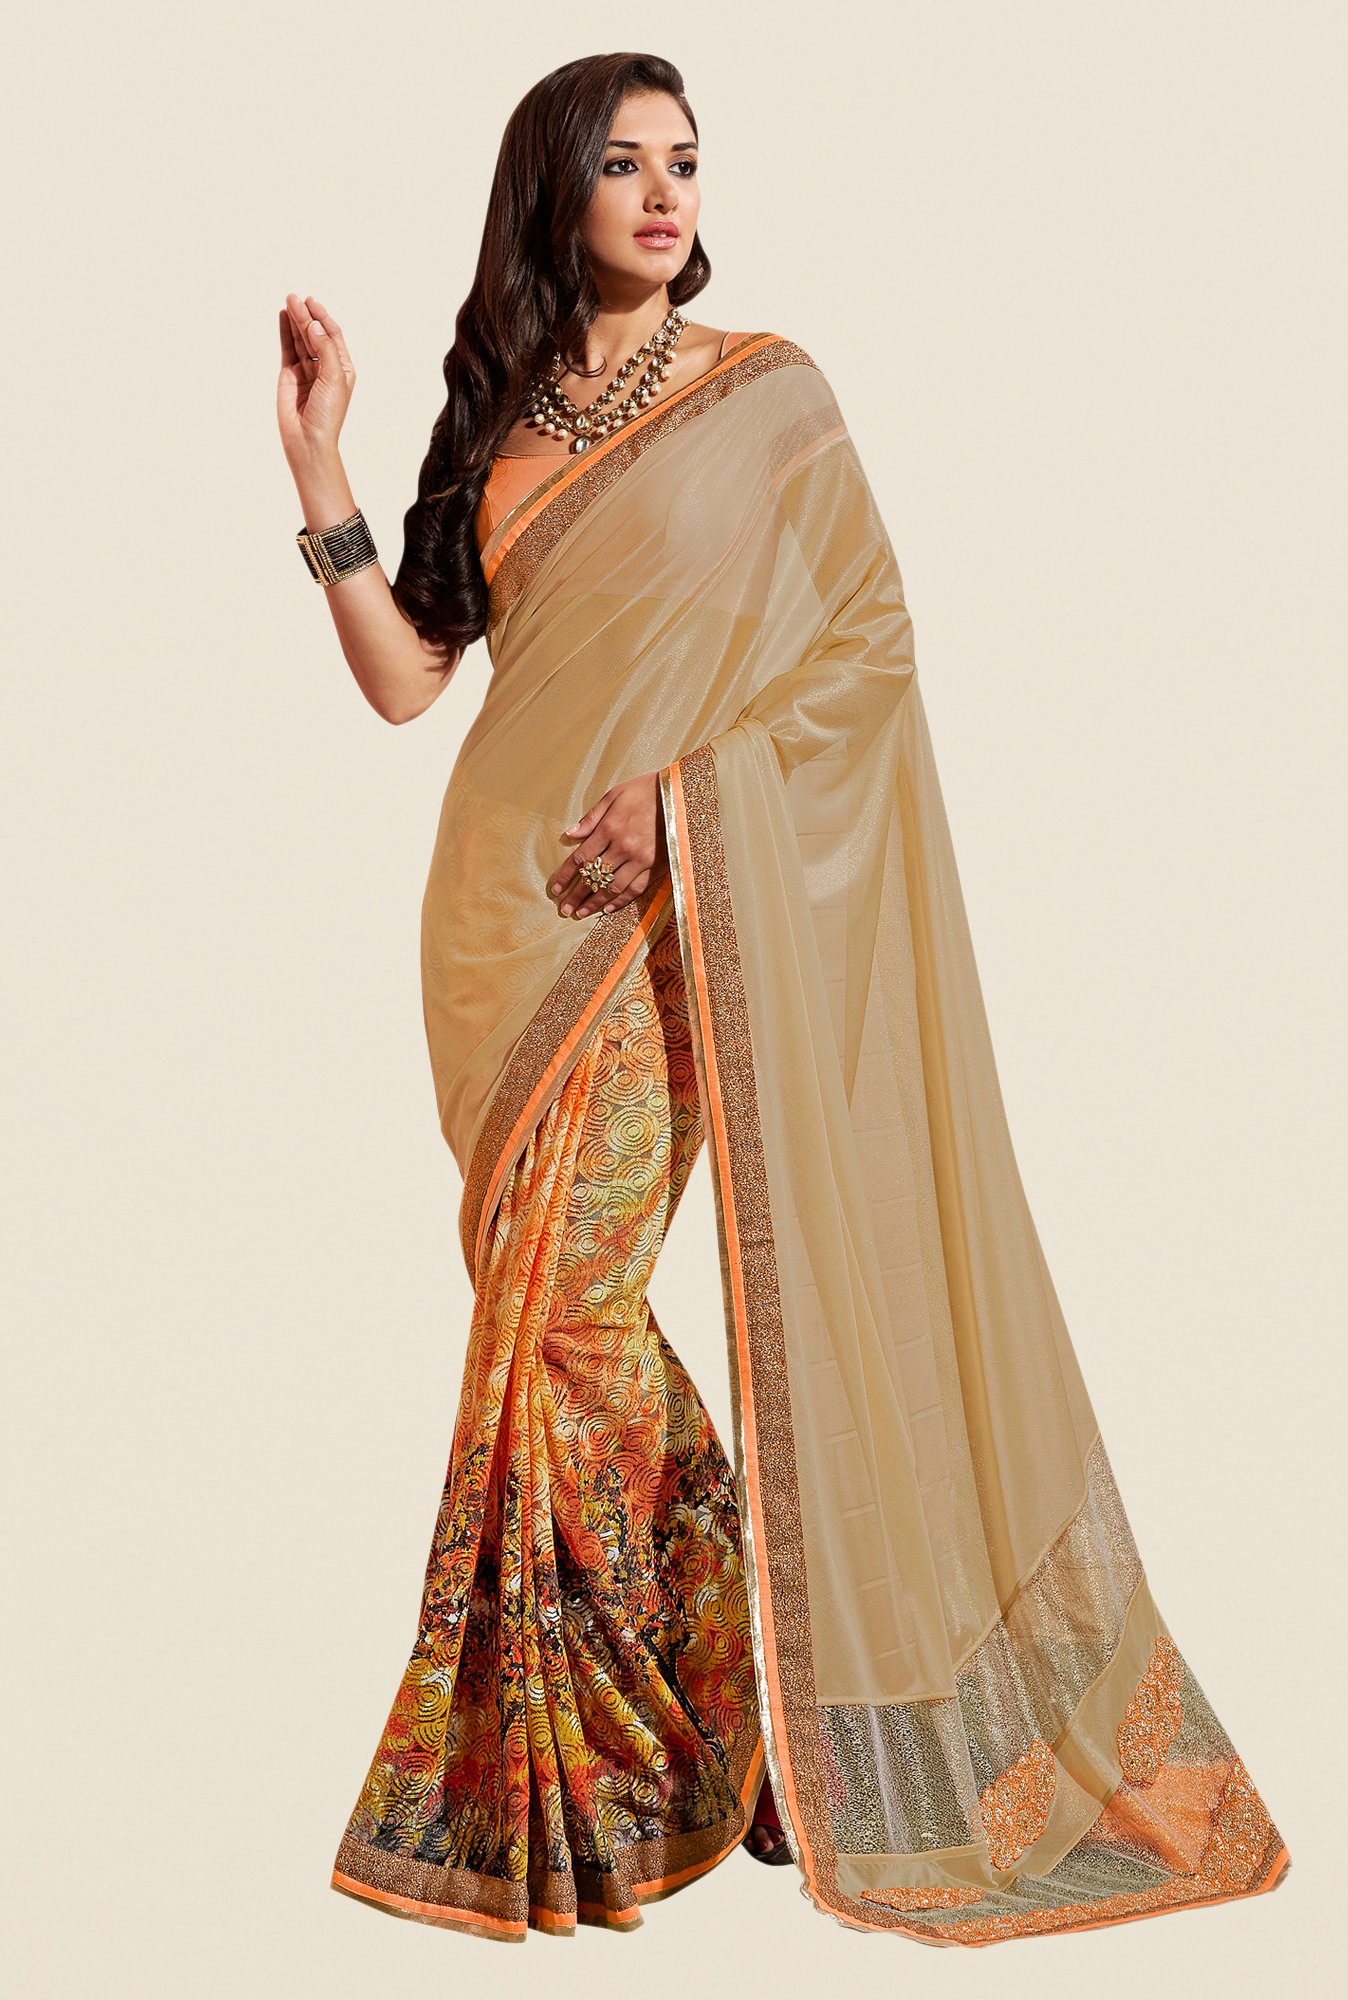 Shonaya Beige & Orange Georgette & Jacquard Saree